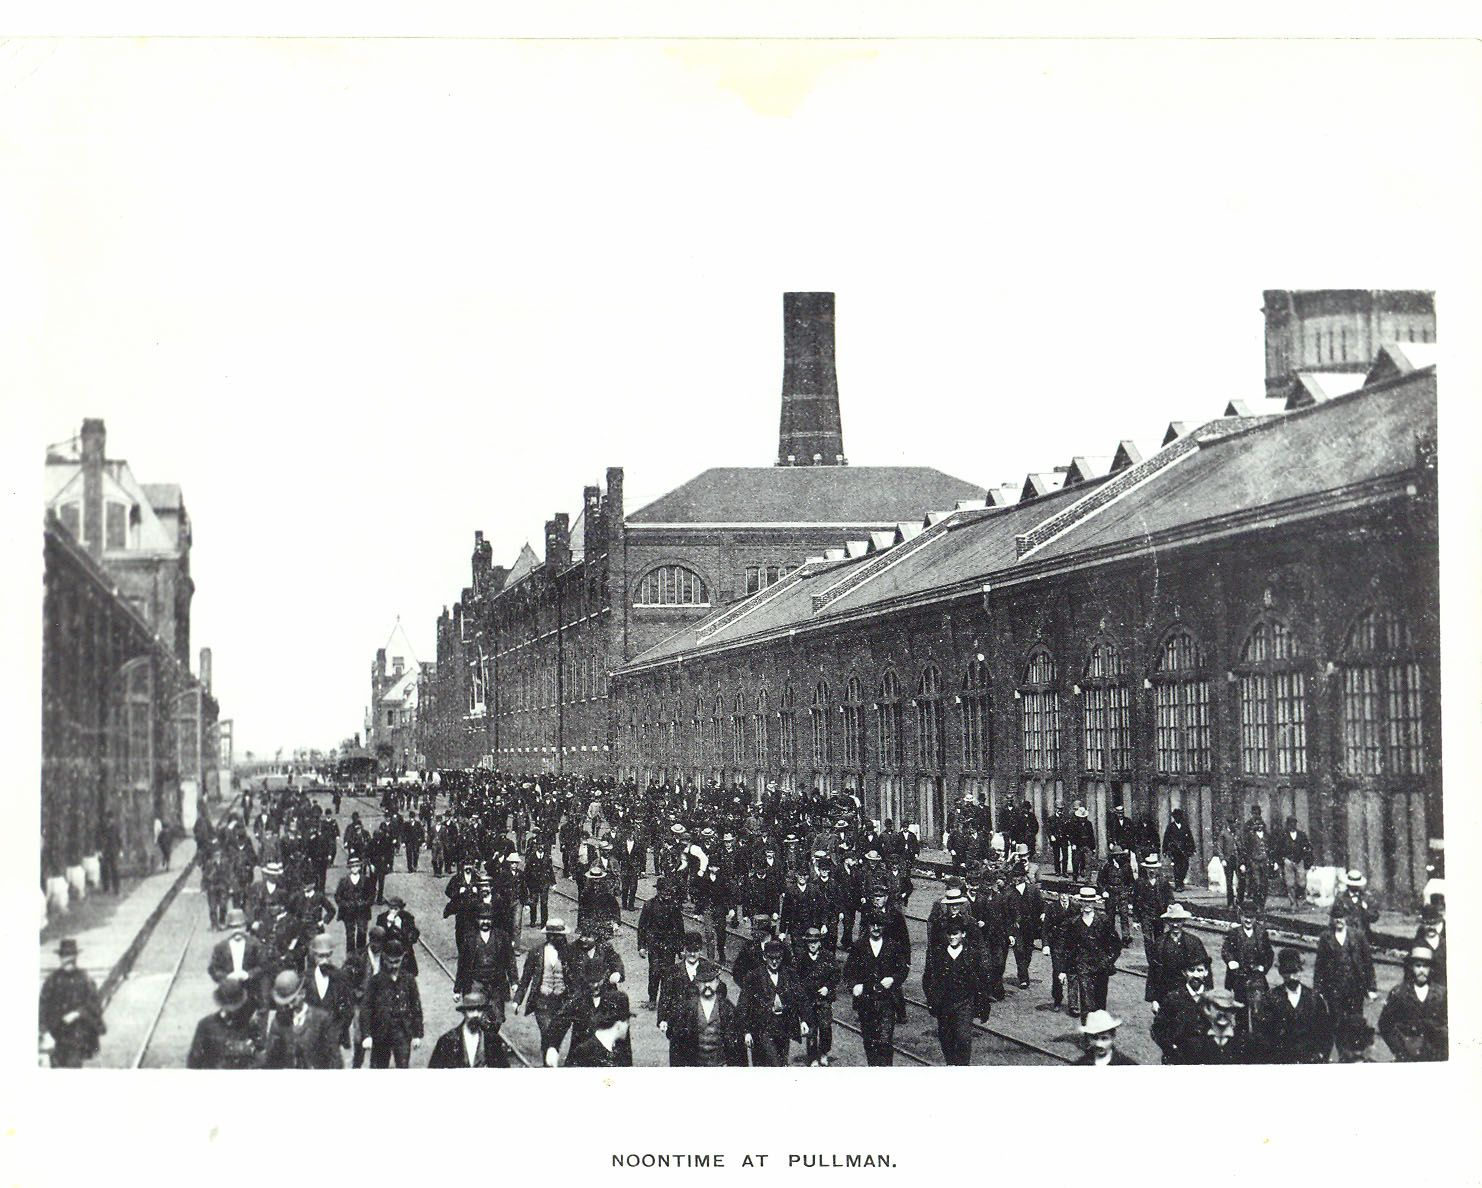 Pullman Factory Workers At Lunchtime C 1890 Workers Leaving Factory For Lunch Note Factory Workers In Suits Chicago Photos Chicago History Chicago Illinois